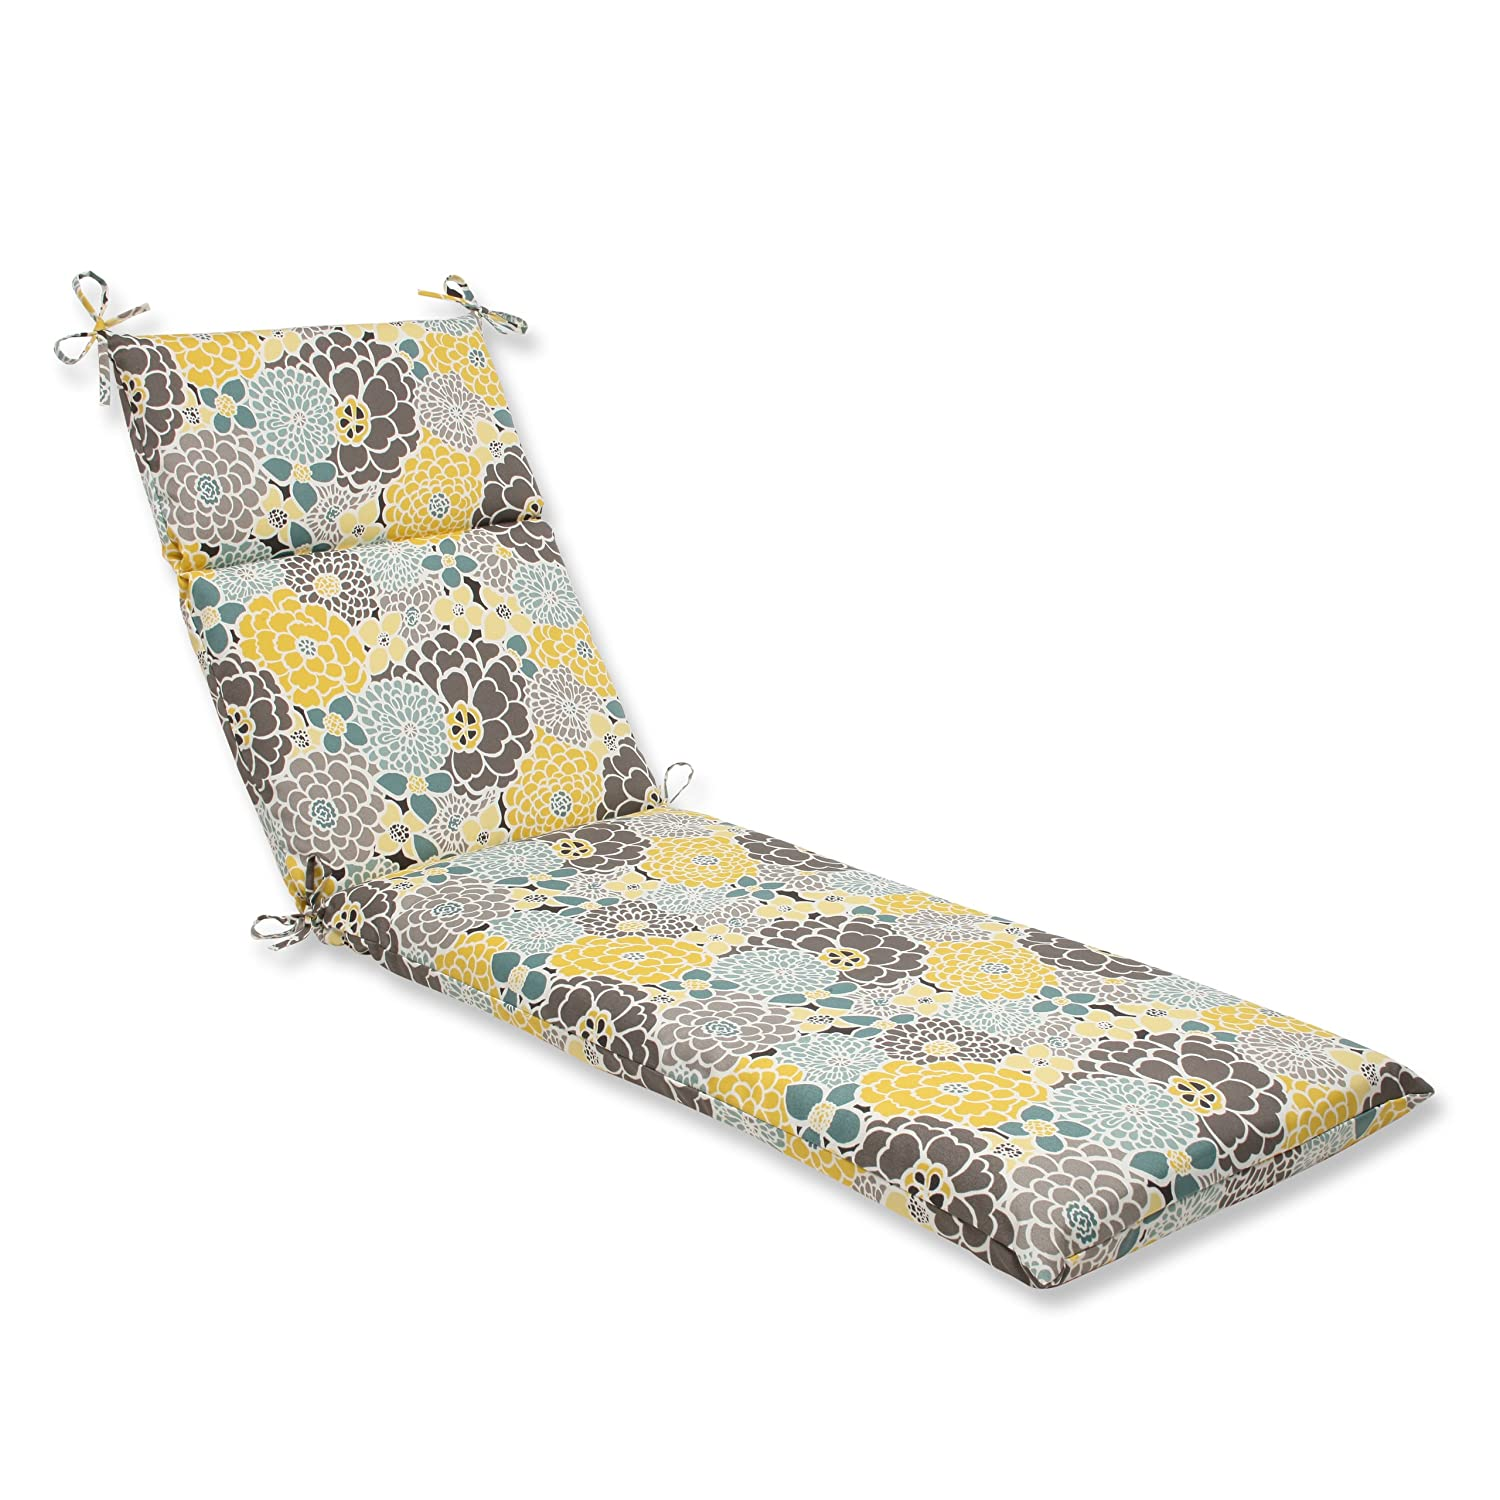 Pillow Perfect Outdoor Full Bloom Chaise Lounge Cushion